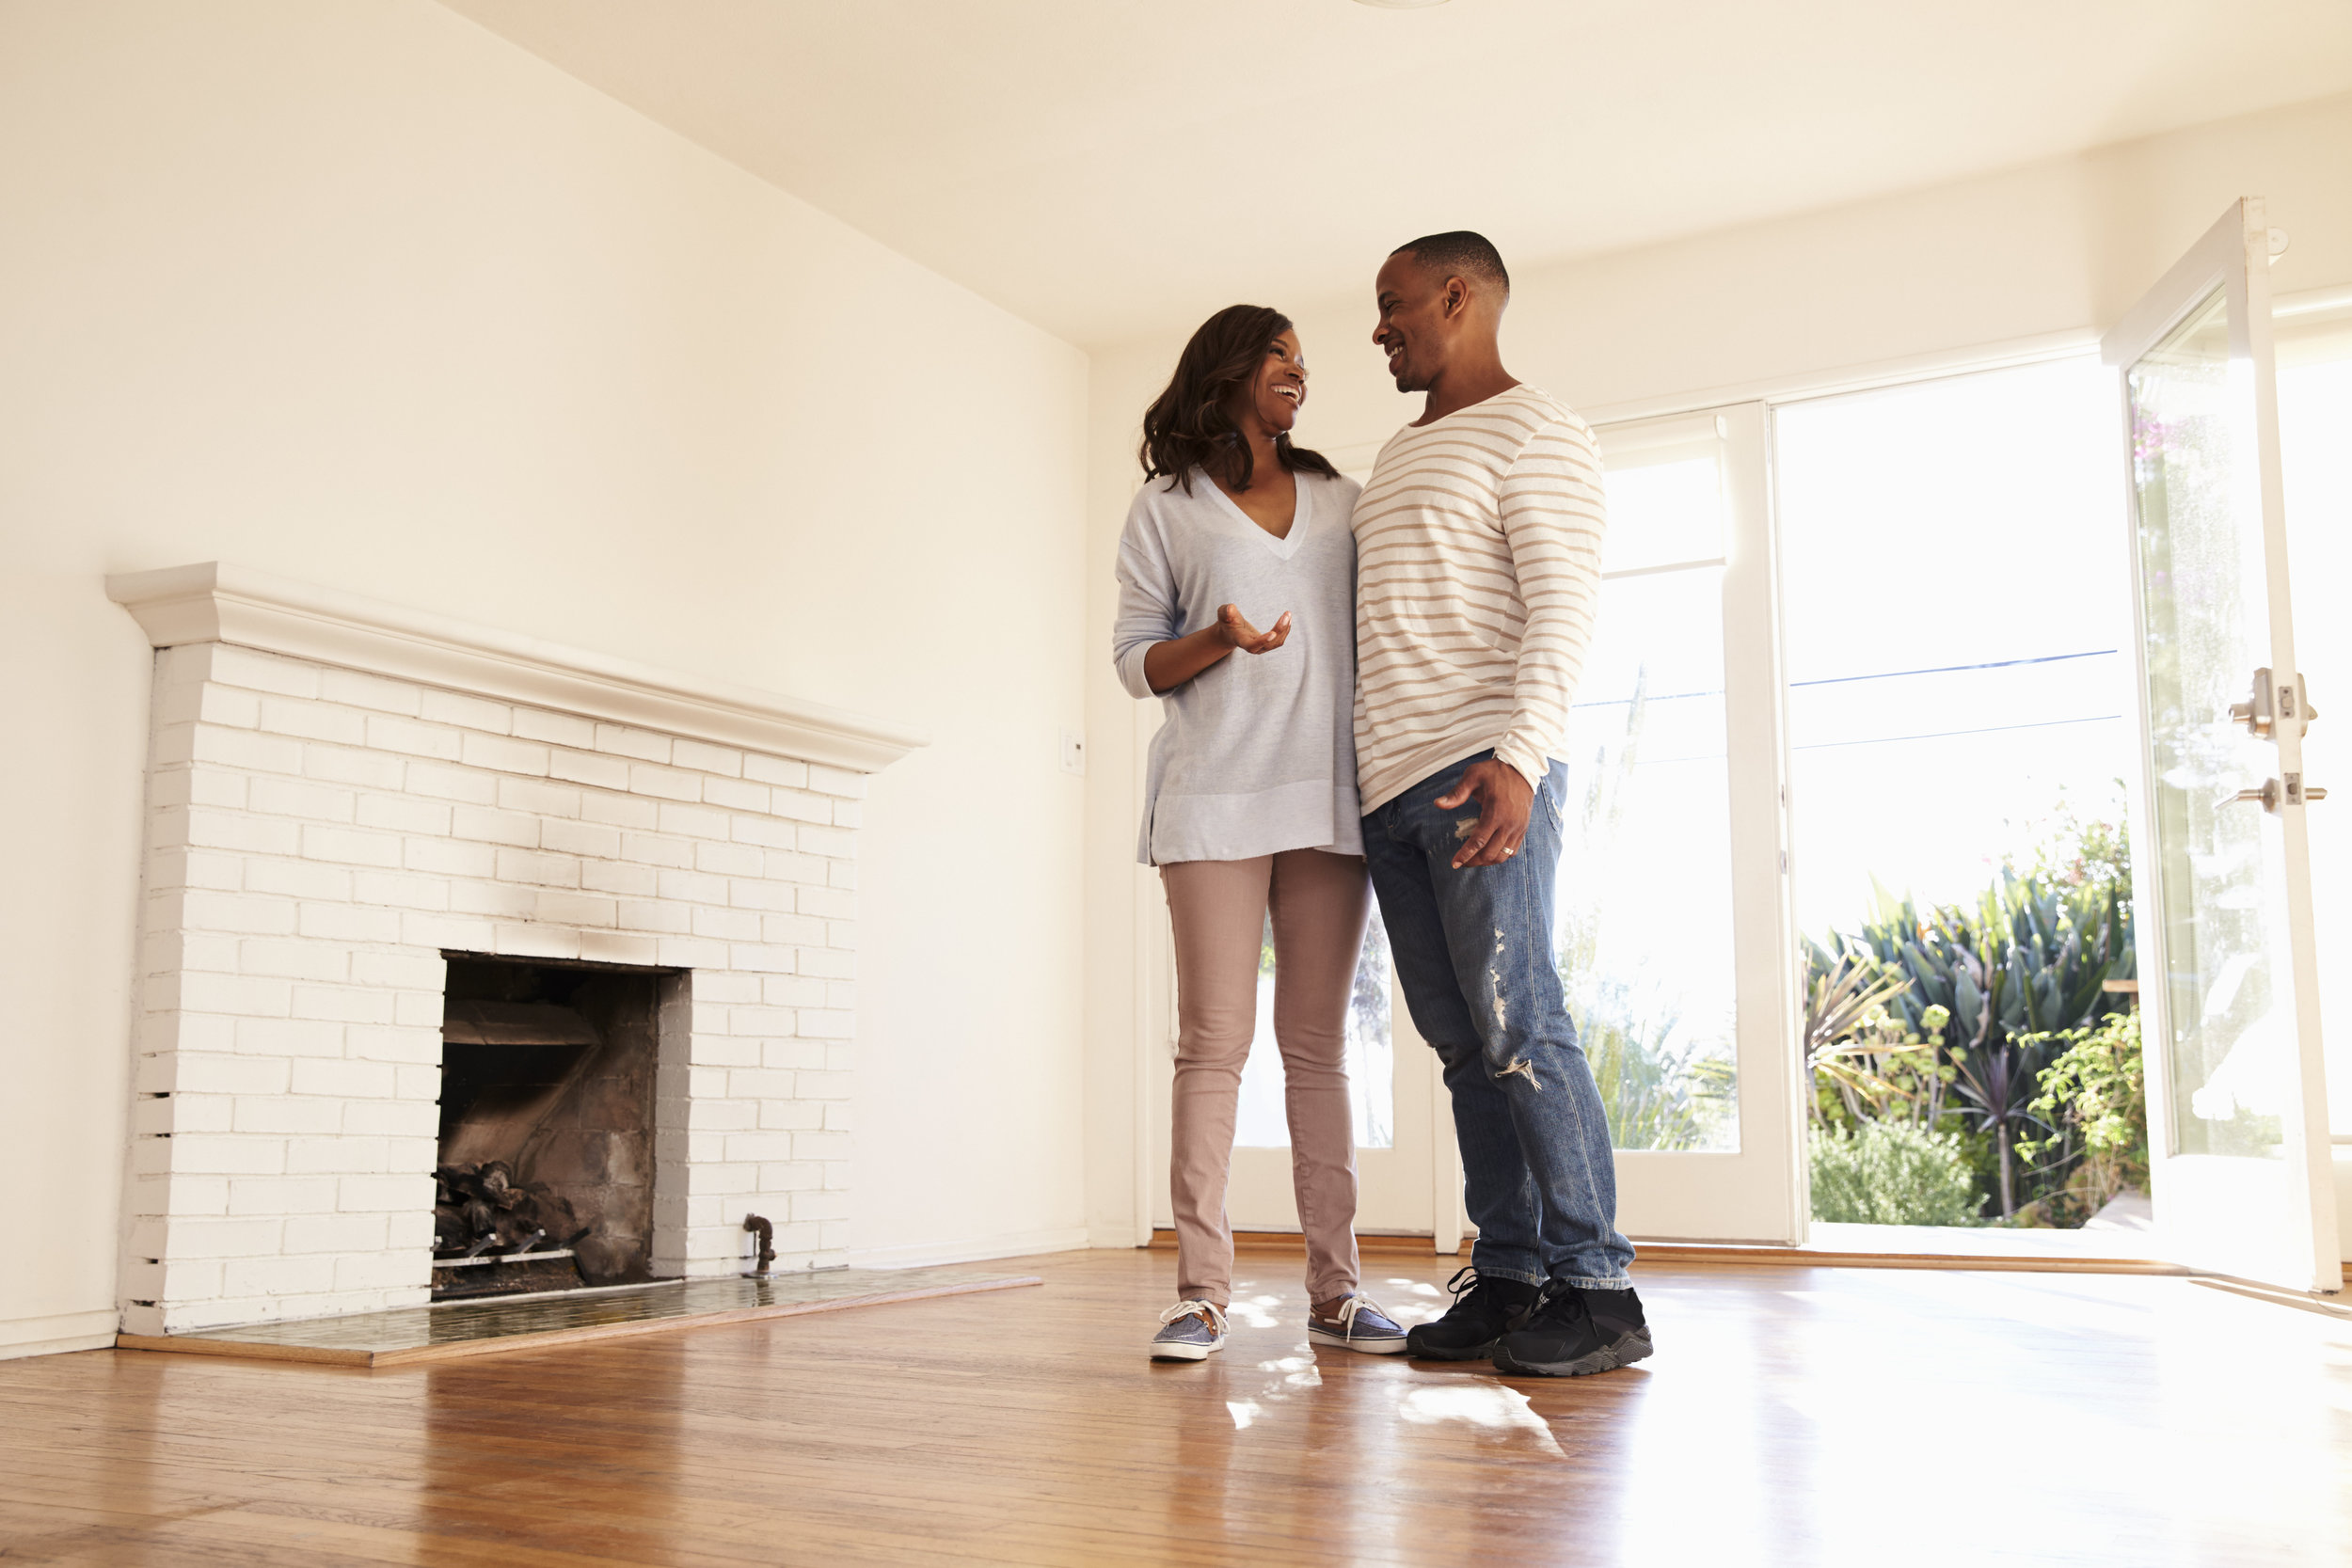 excited-couple-explore-new-home-on-moving-day-P79YVBT.jpg